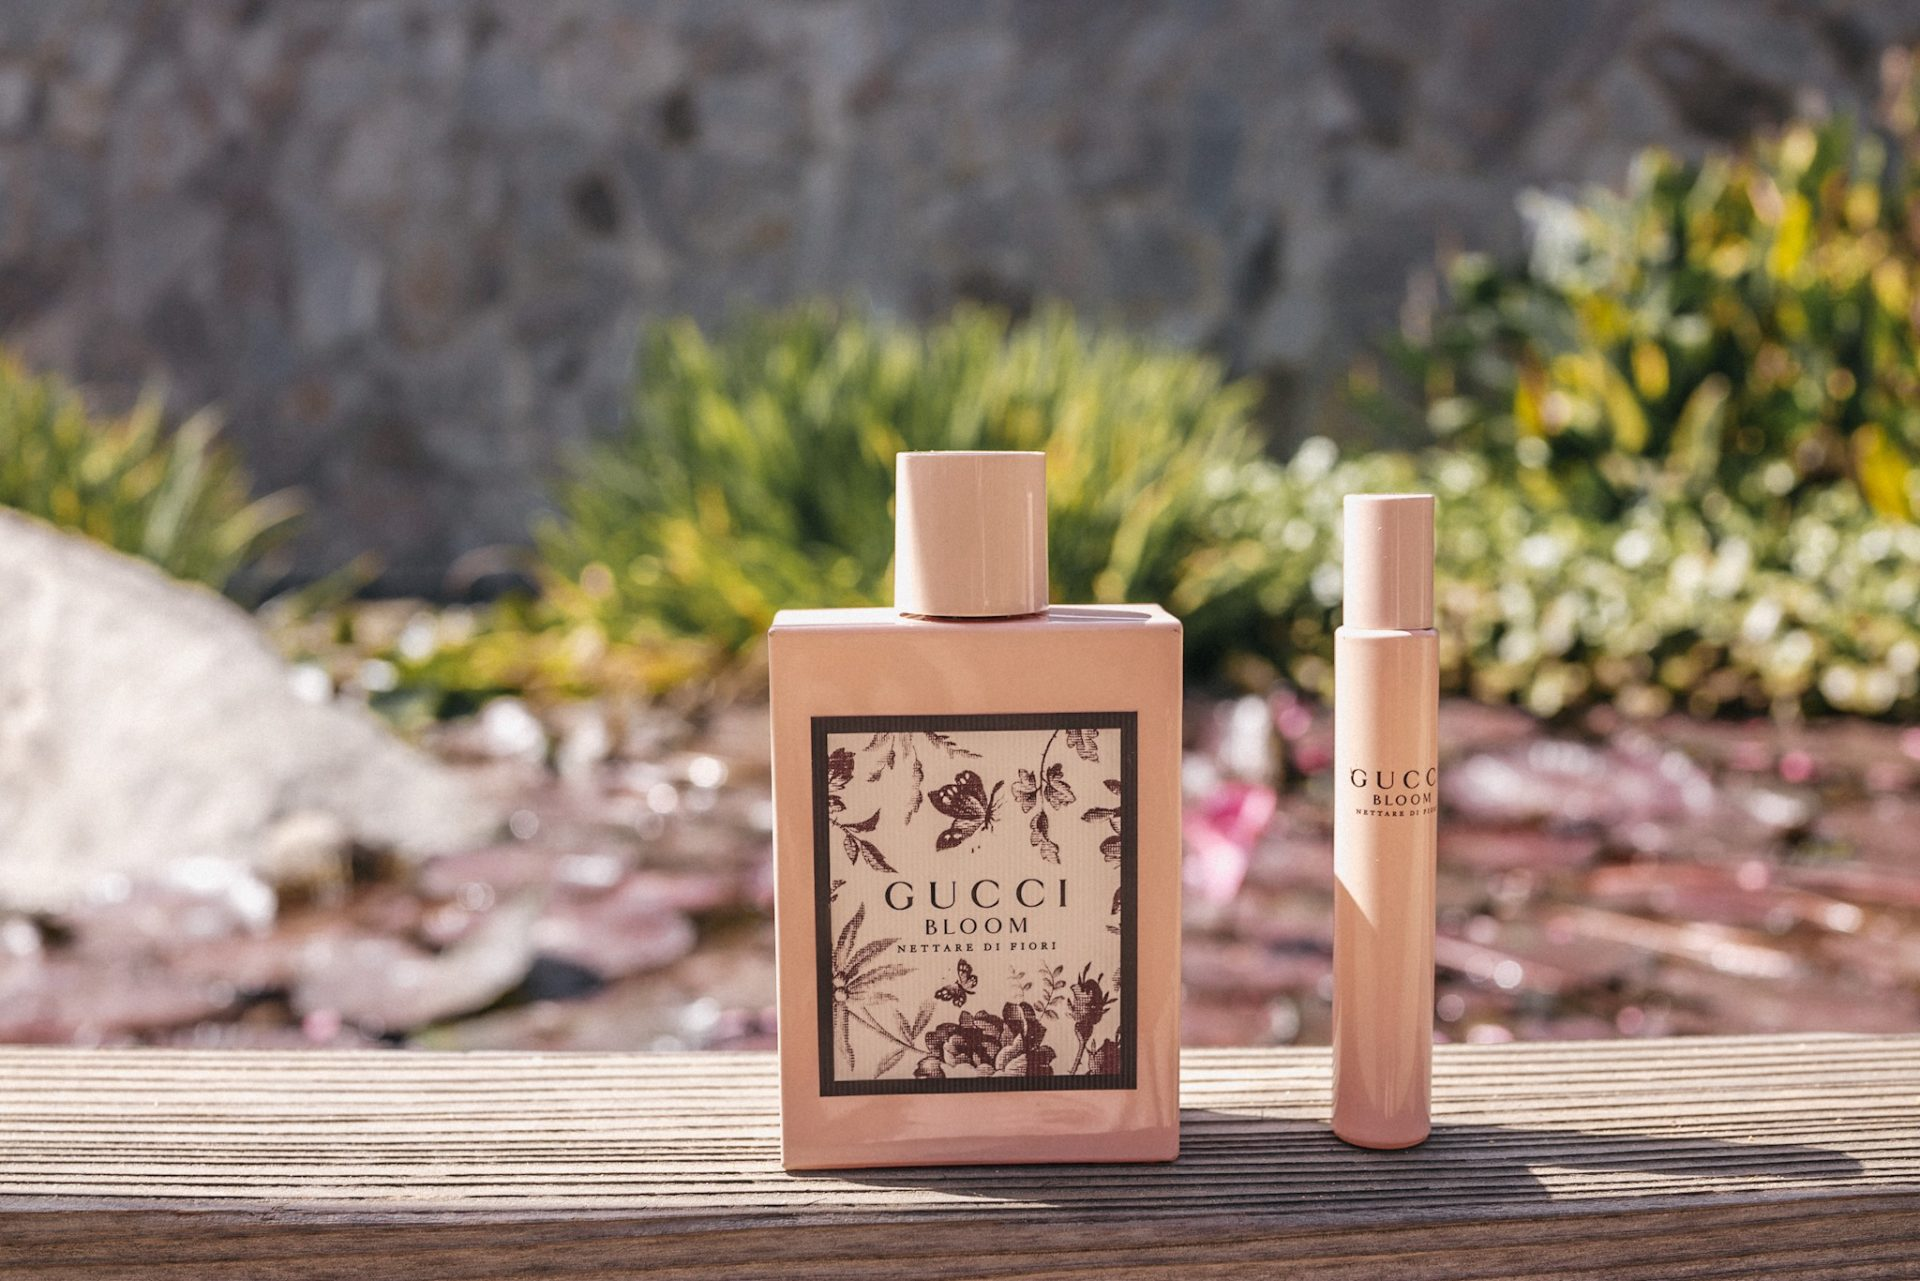 New Fall Scent Gucci Bloom Nettare Di Fiori Sephora Classic